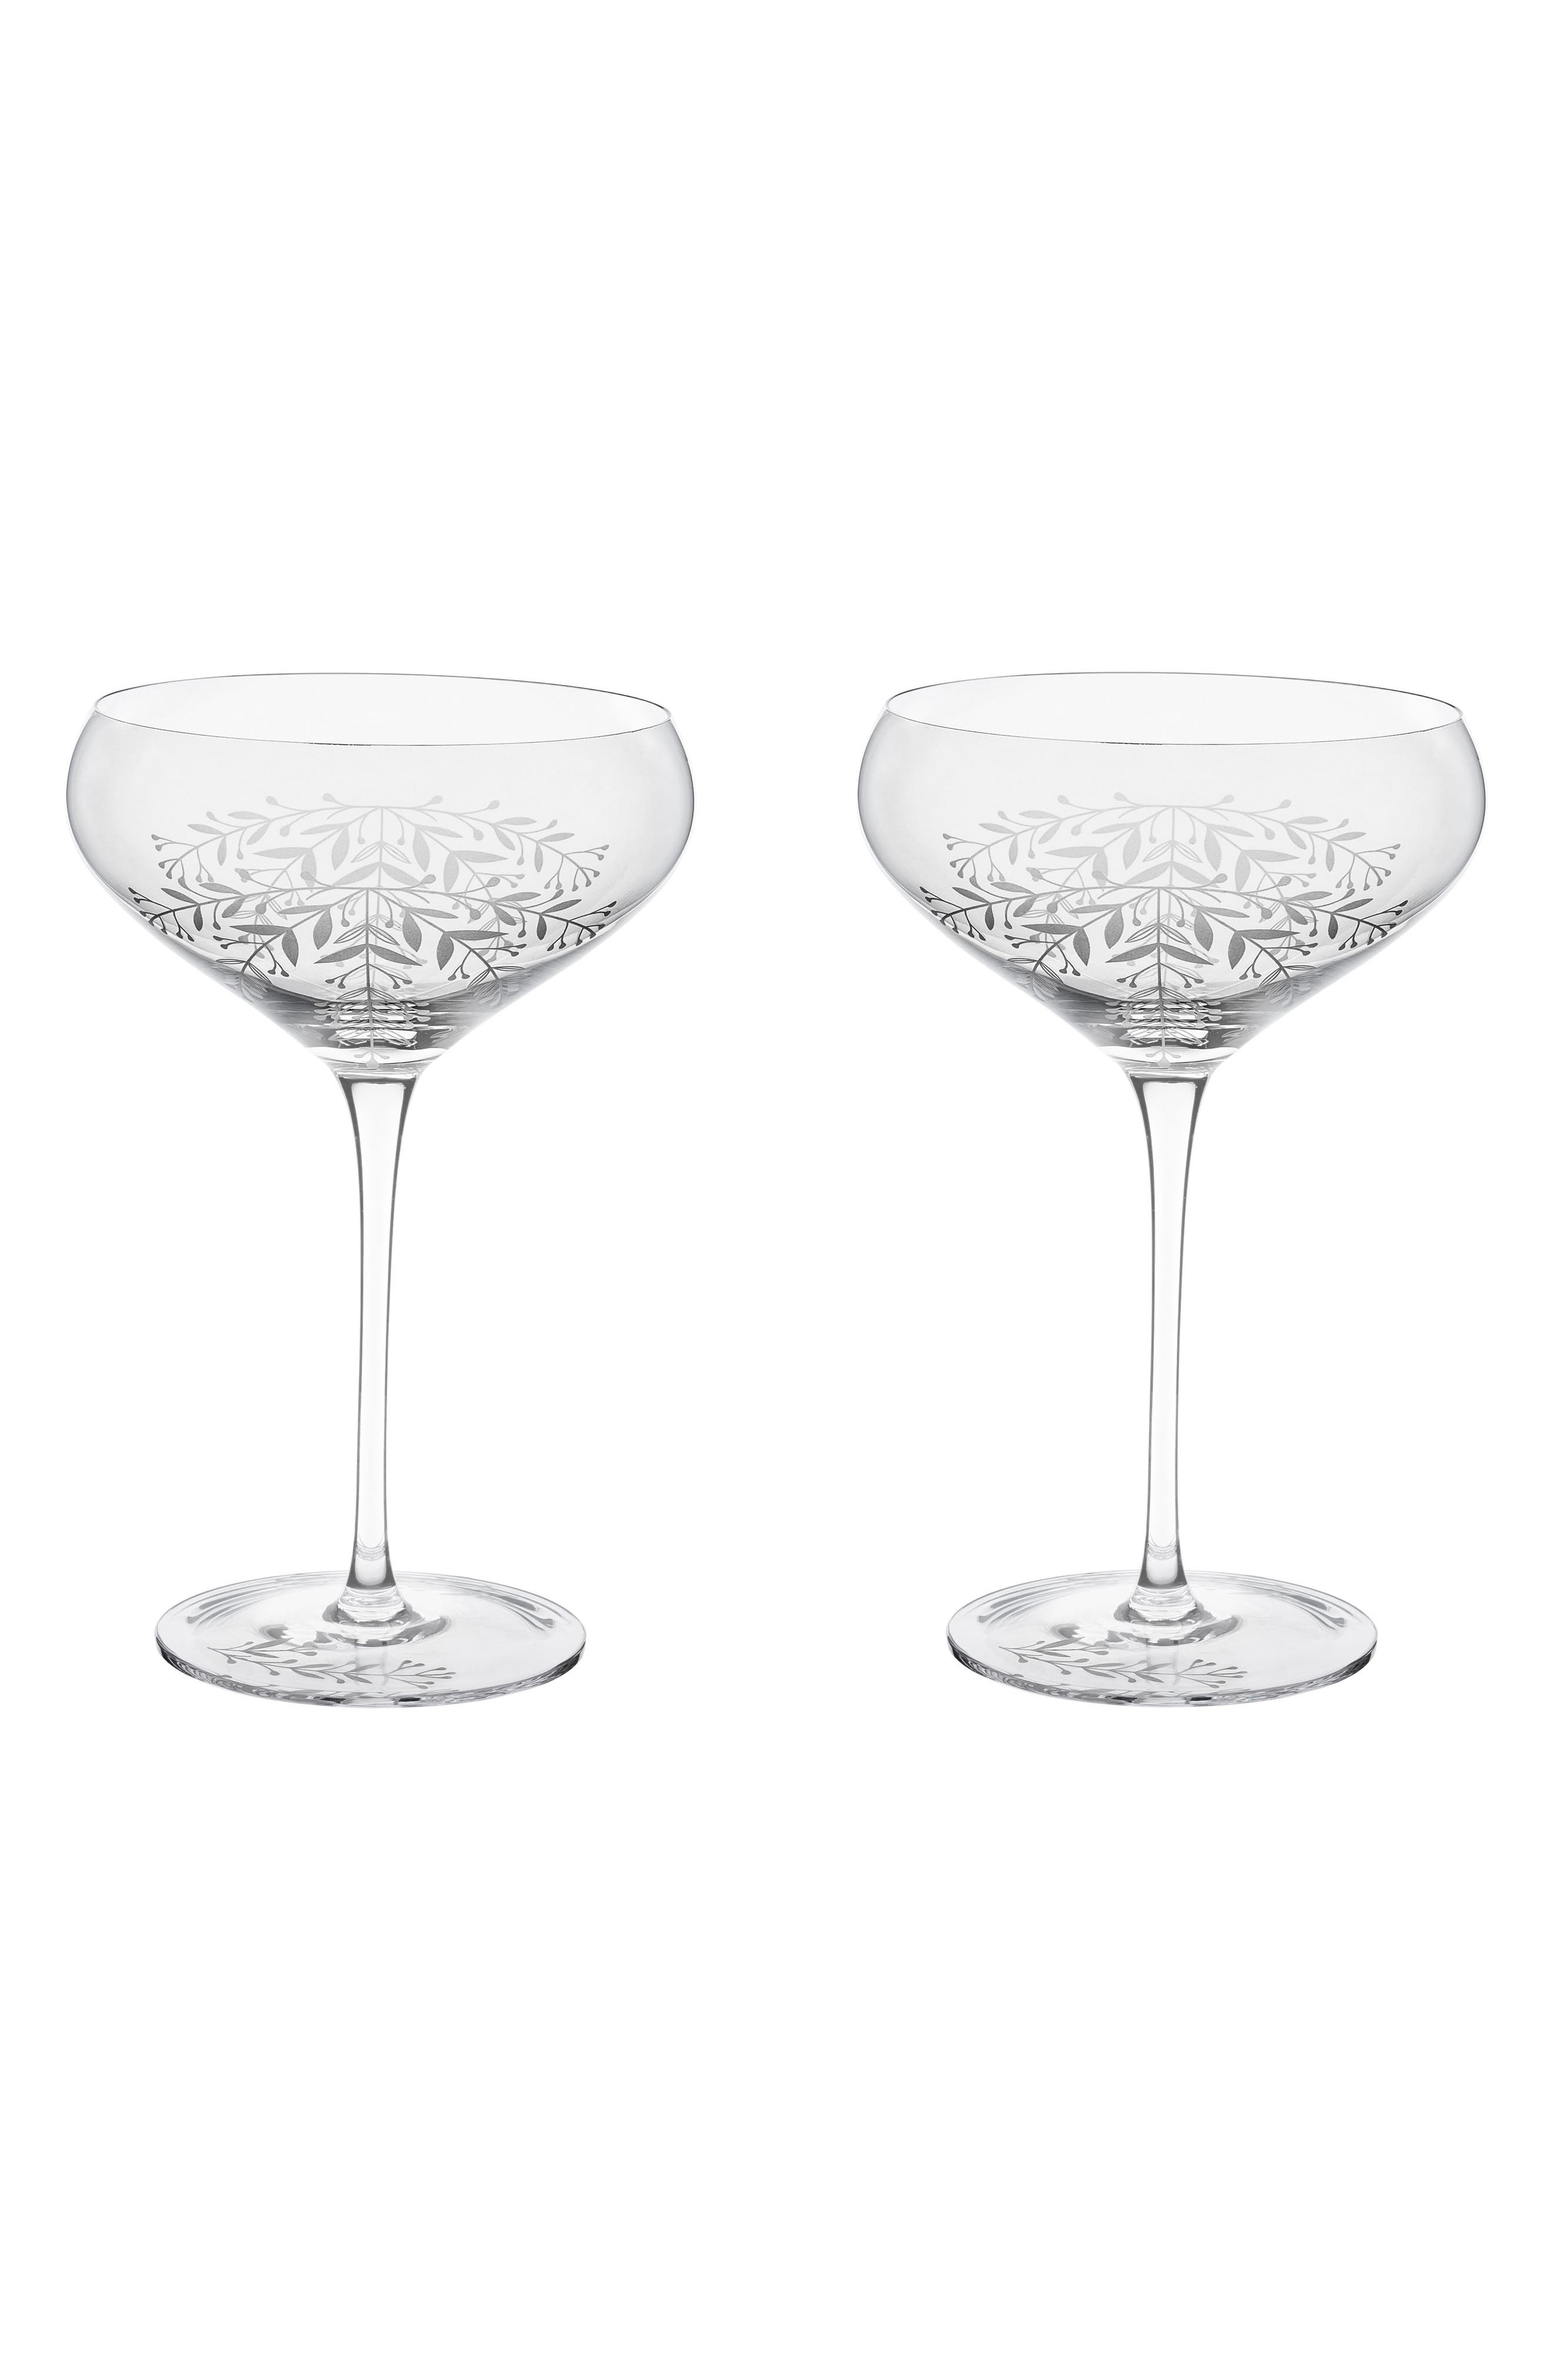 Floral Set of 2 Champagne Coupes,                         Main,                         color, 100